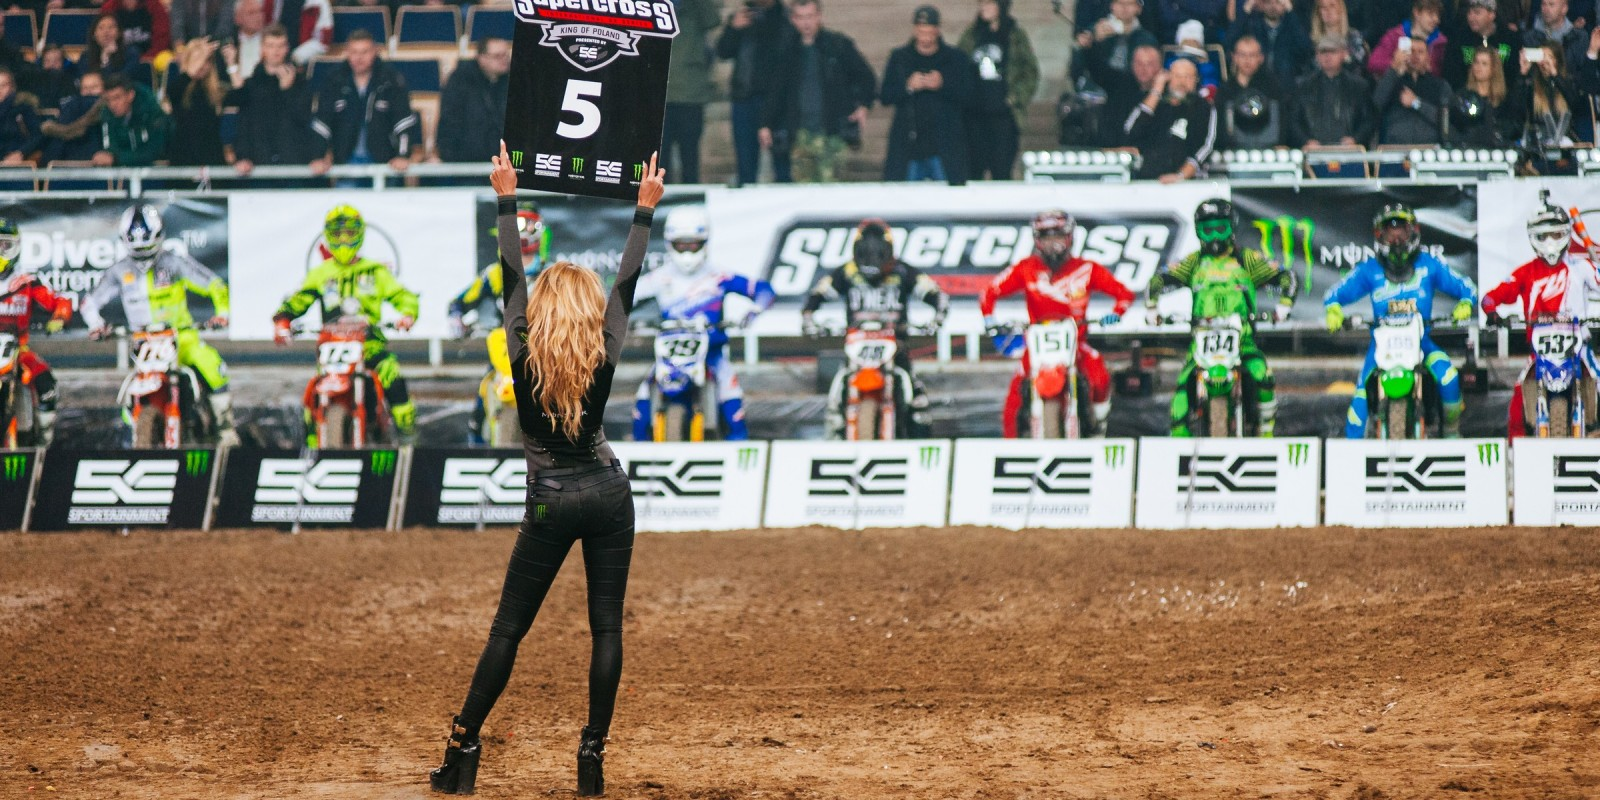 Supercross King of Poland 2016 - Monster Girls presenting timing boards